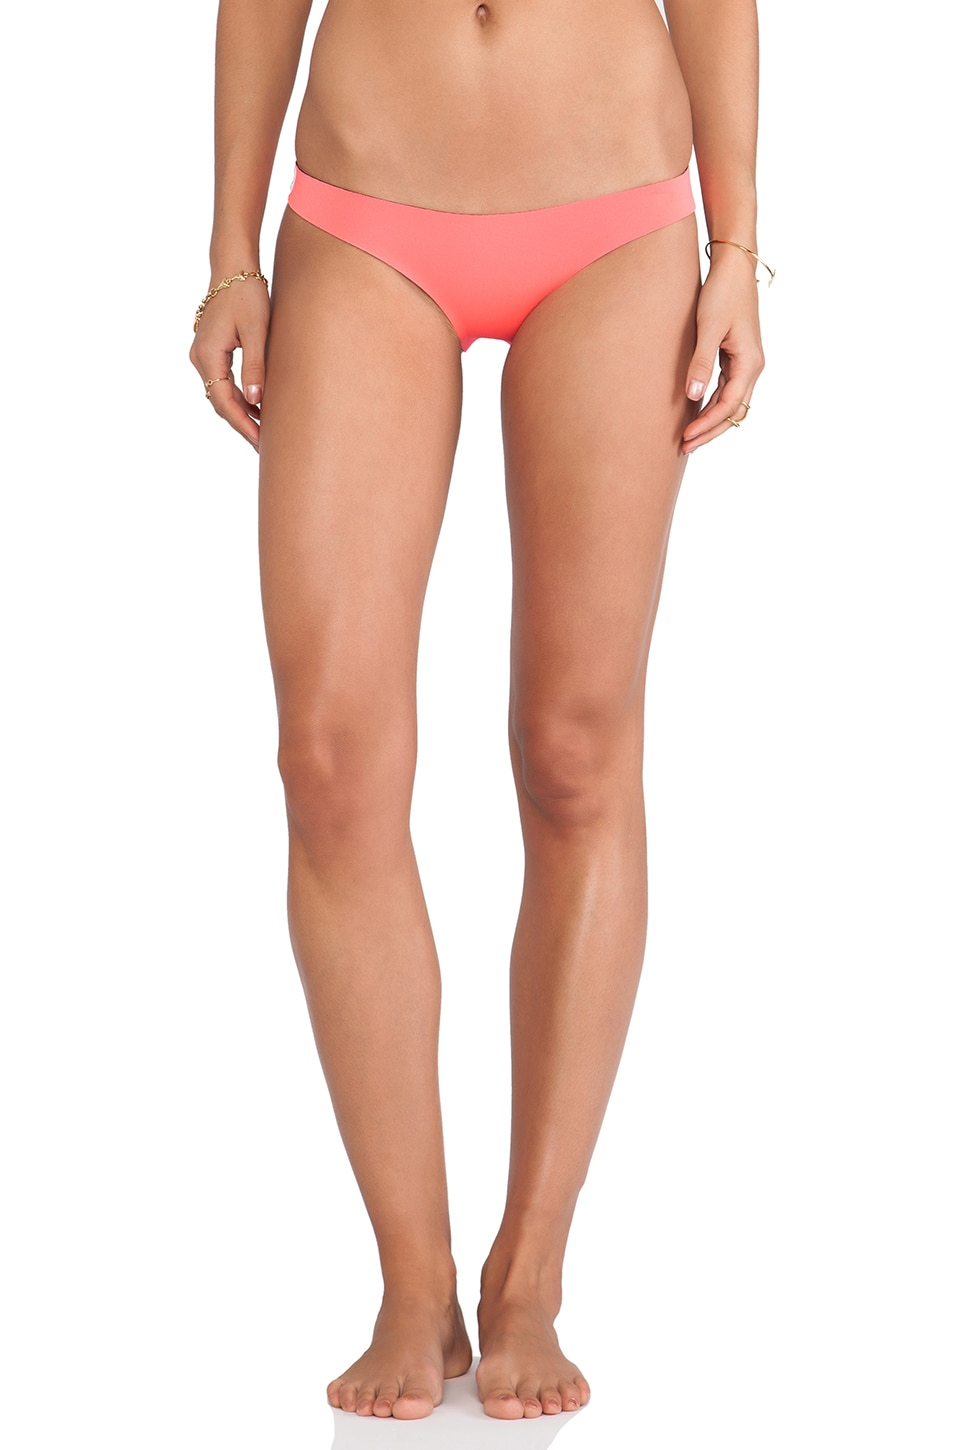 N.L.P Brazilian Neoprene Bottom in Neon Pink